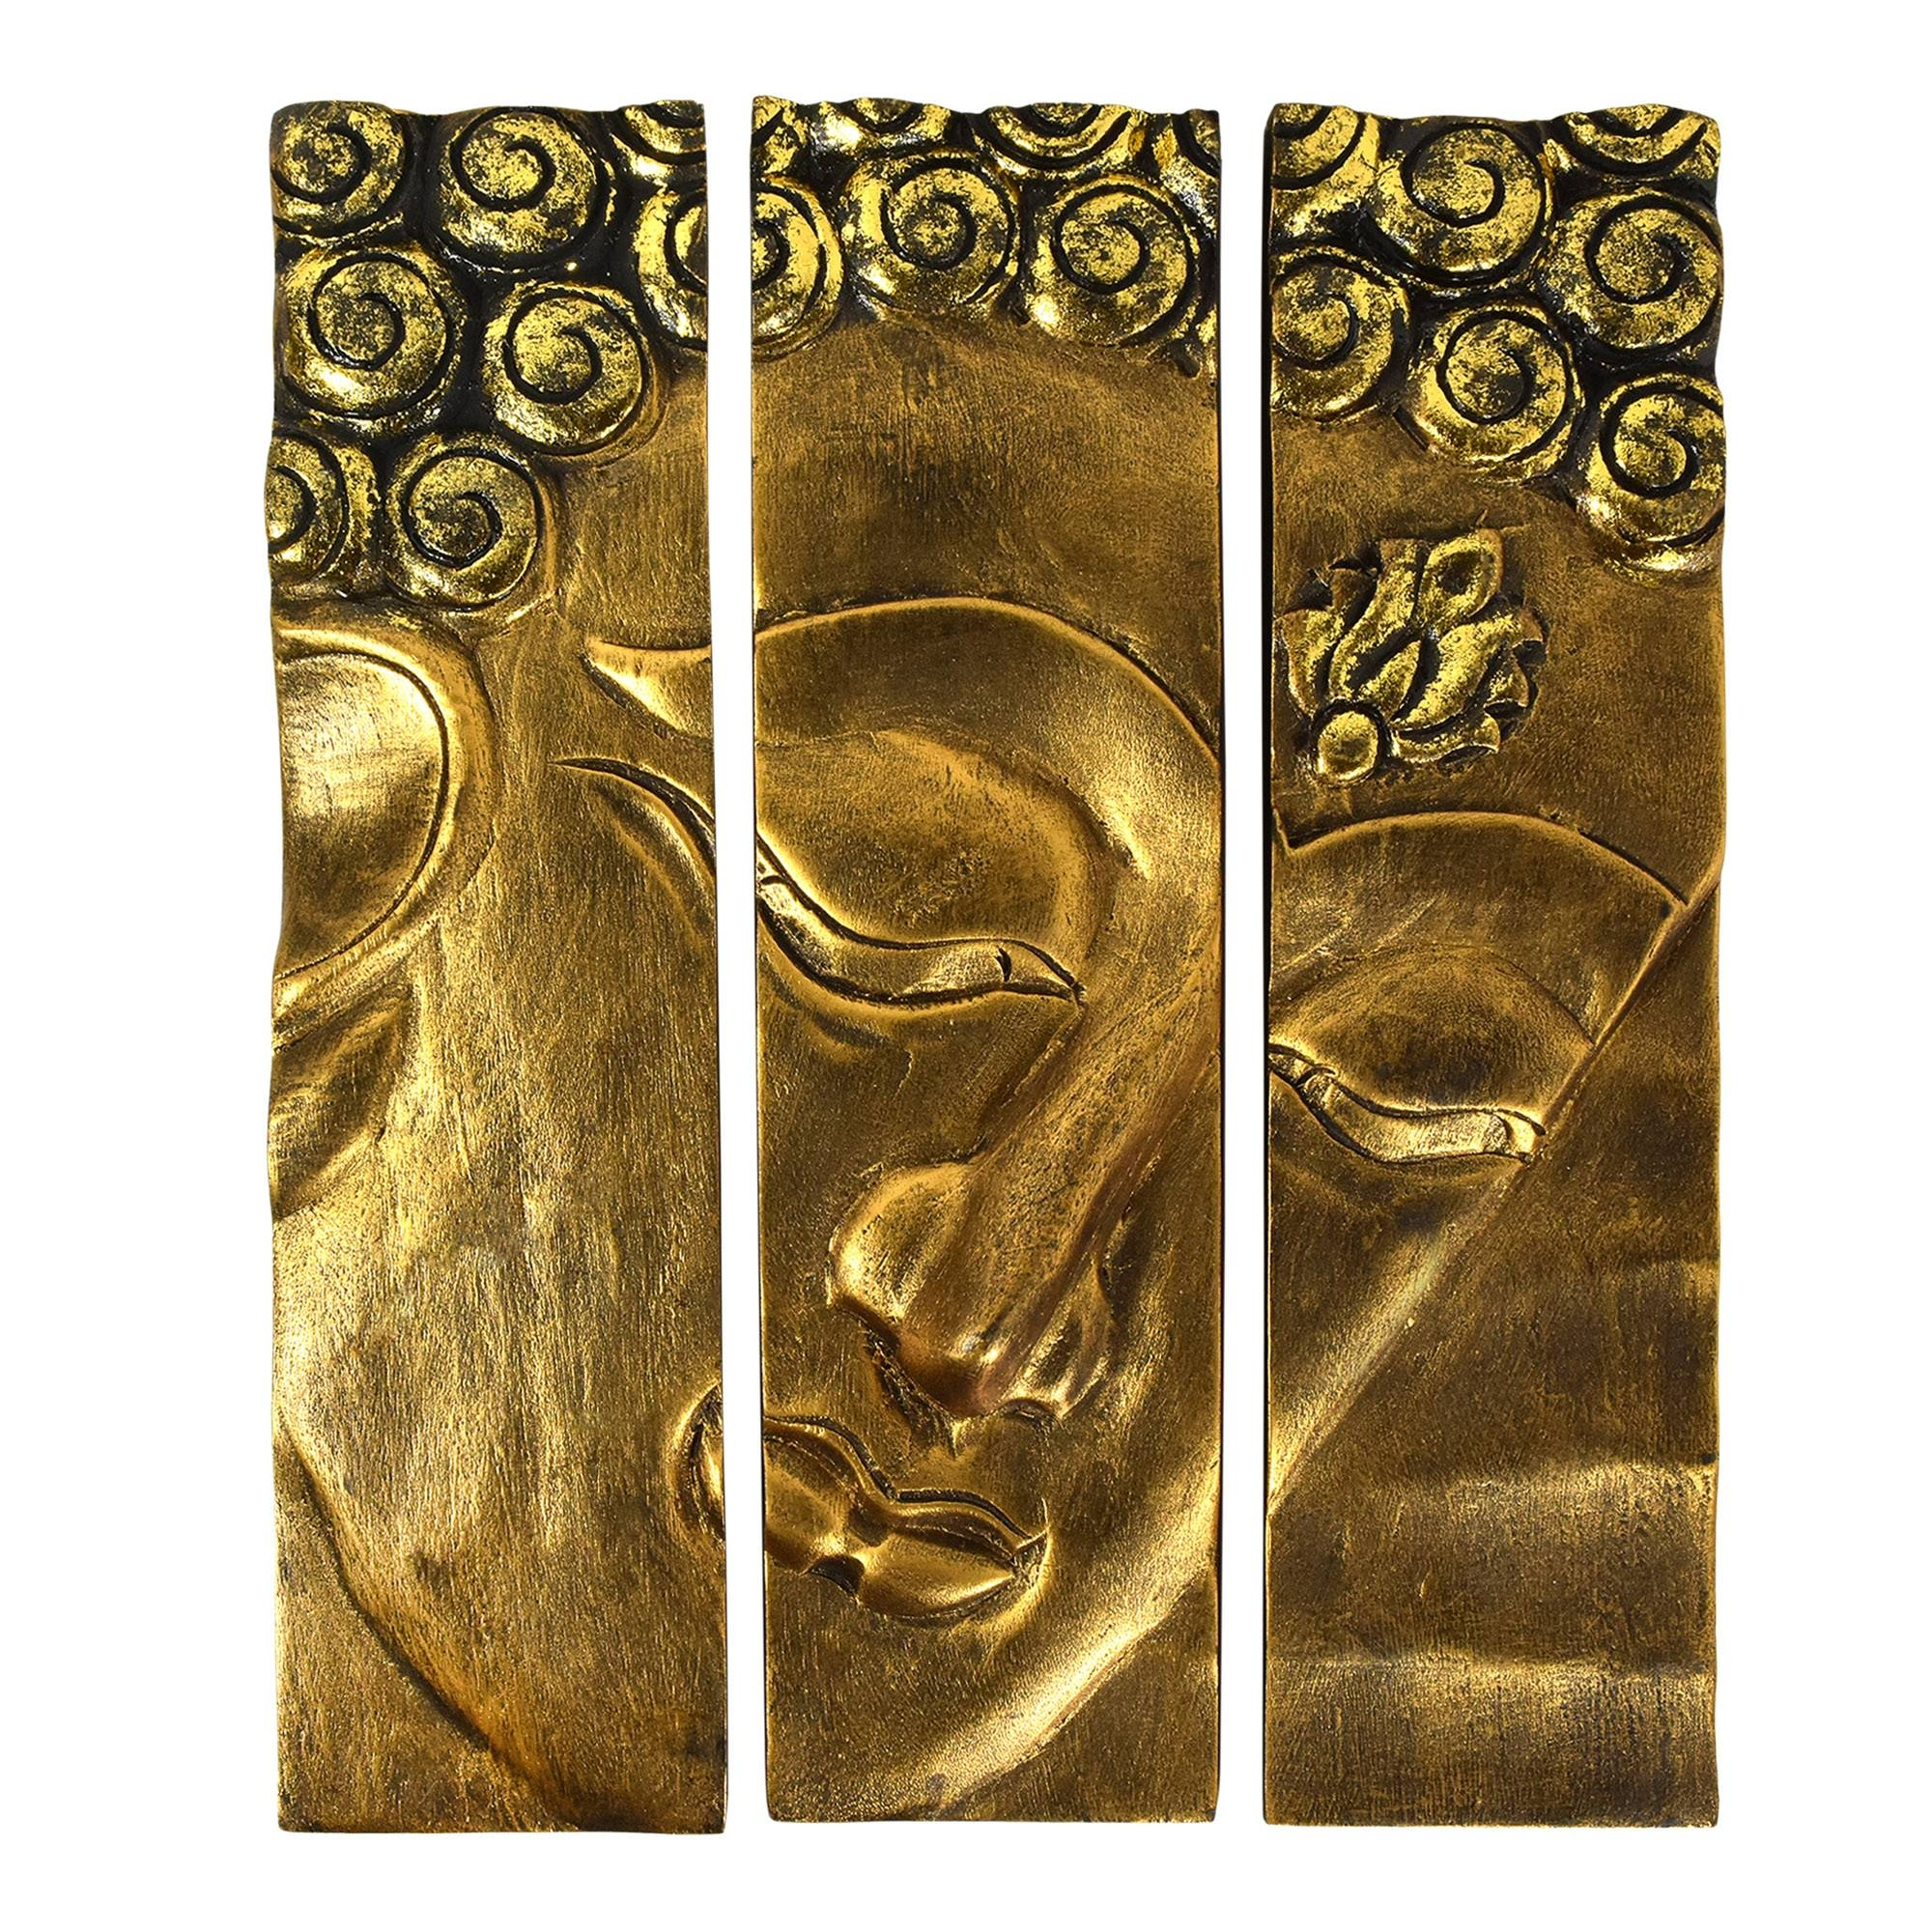 Golden Buddha Face Three Panel Hanging Handmade Wall Art 12X15 Inside 2017 Buddha Wood Wall Art (View 6 of 20)